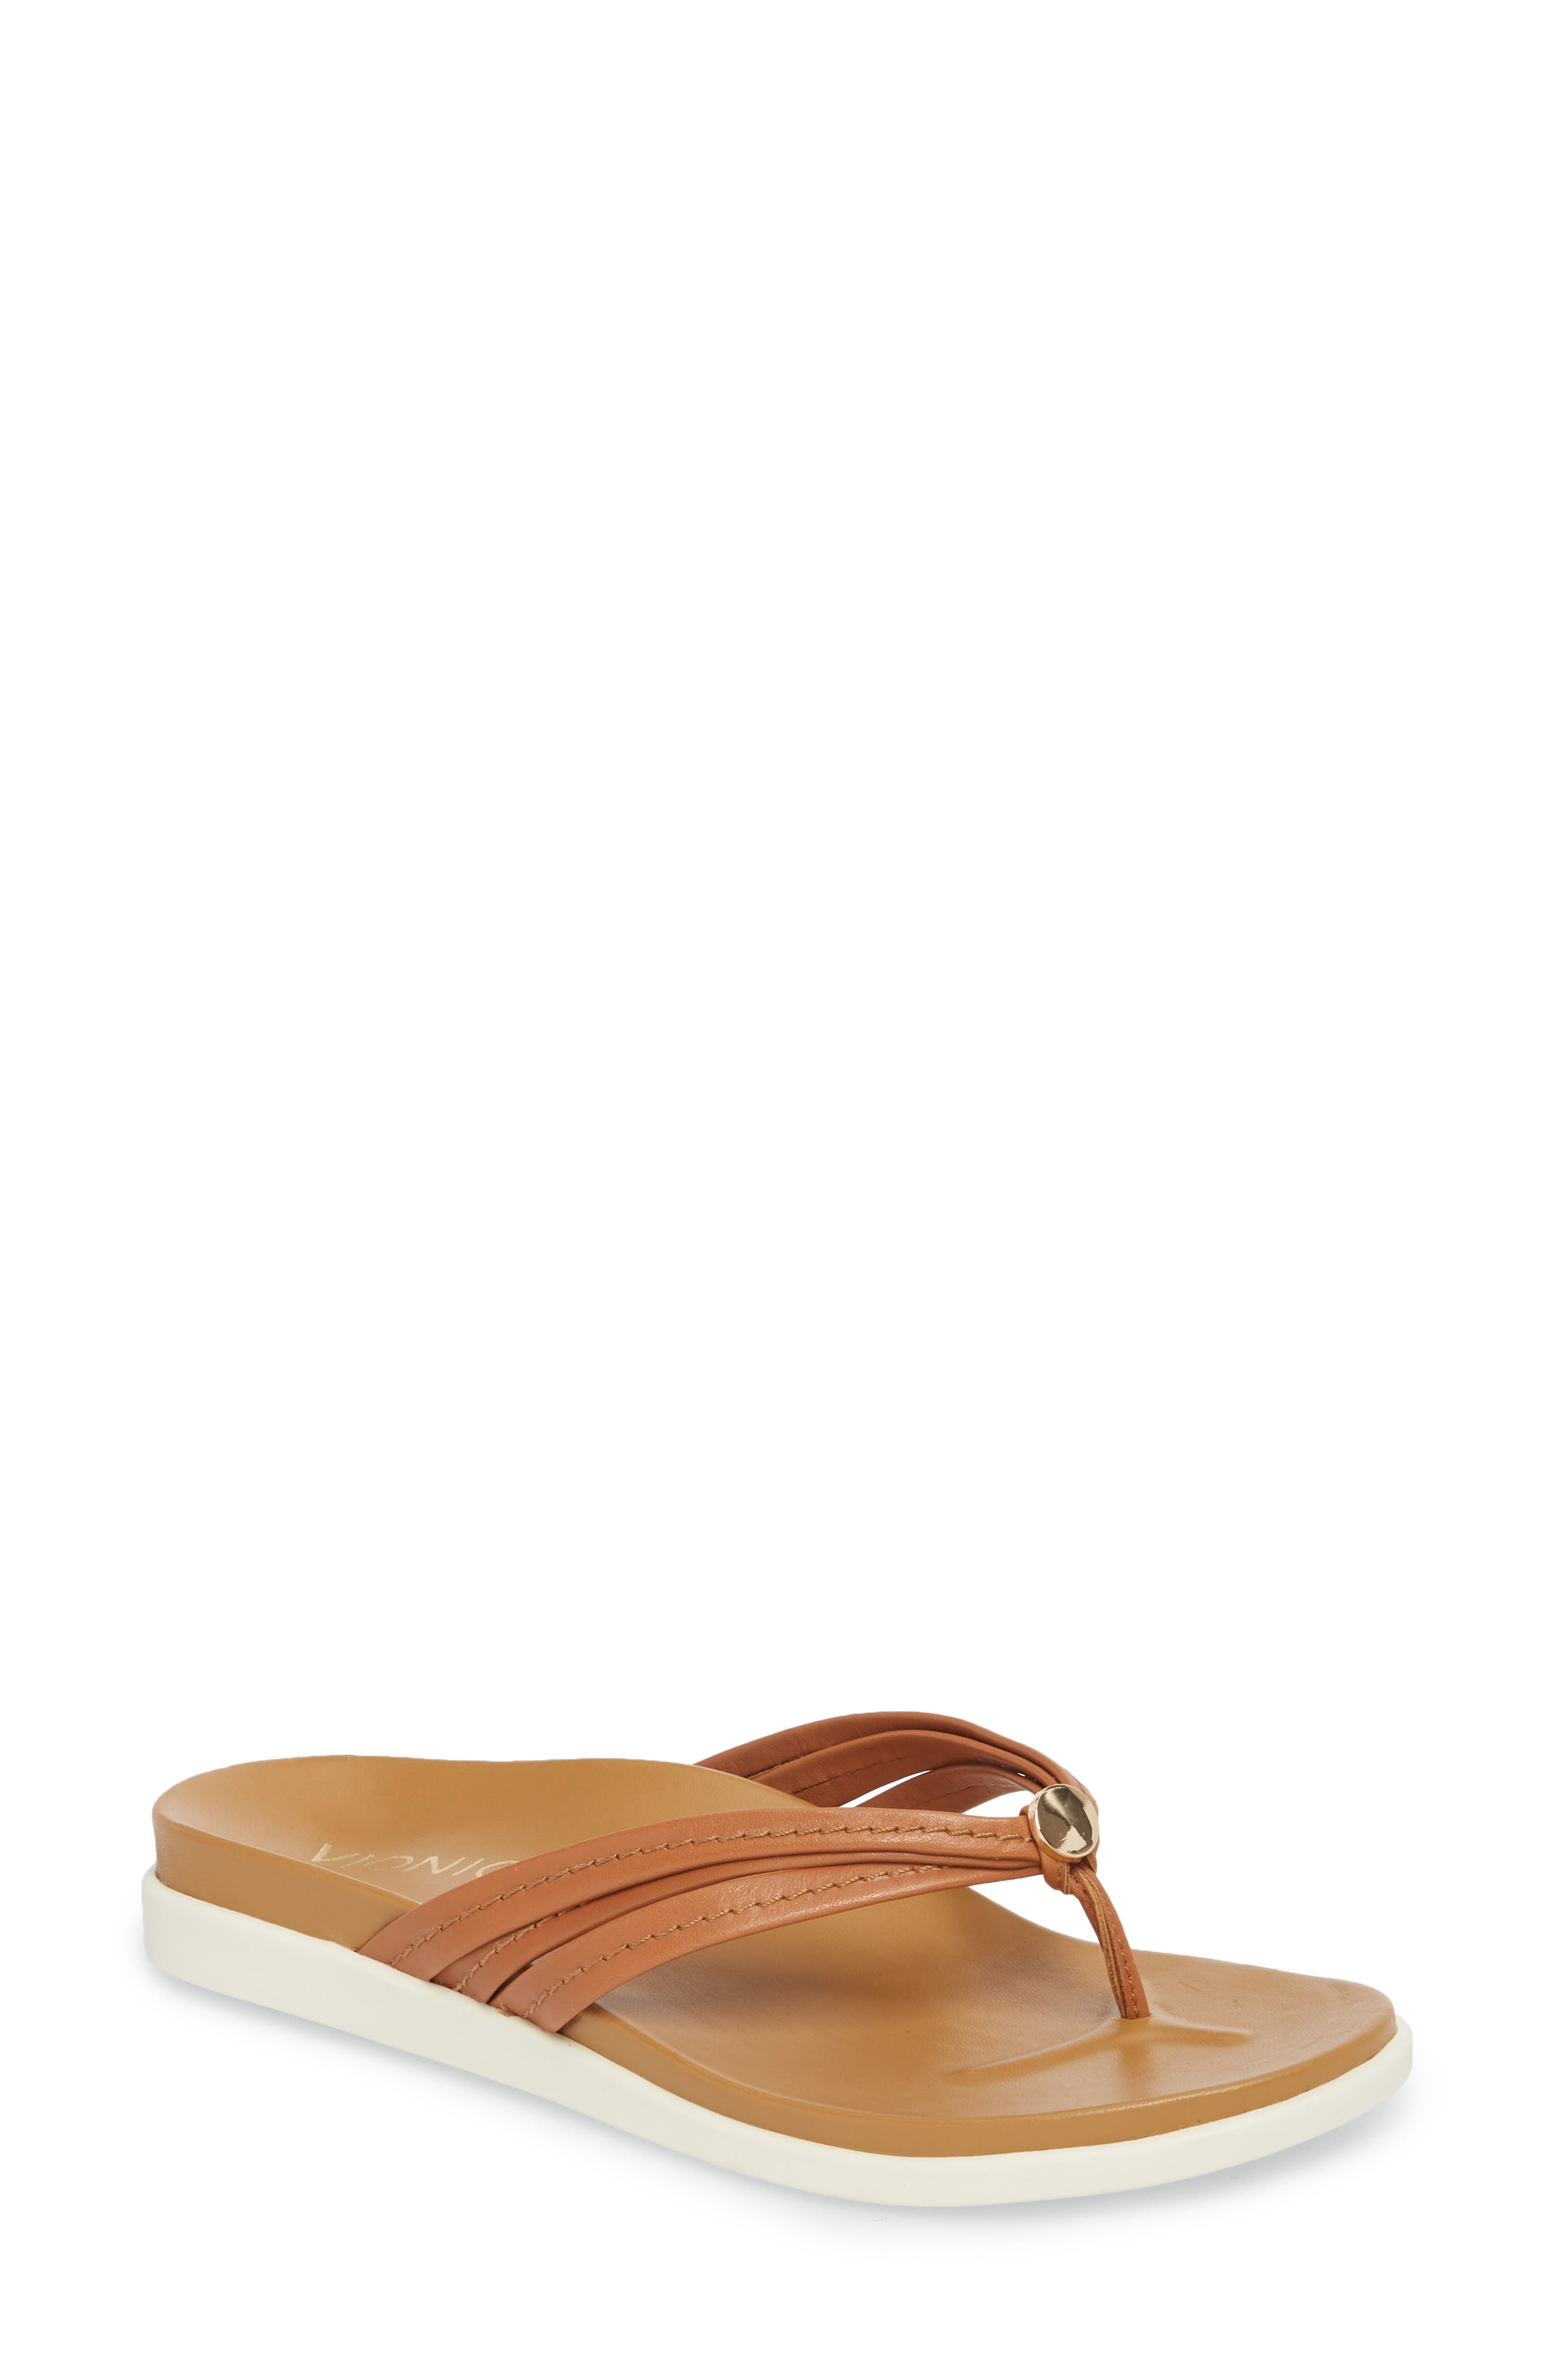 Catalina Flip Flop,                             Main thumbnail 1, color,                             Tan Leather